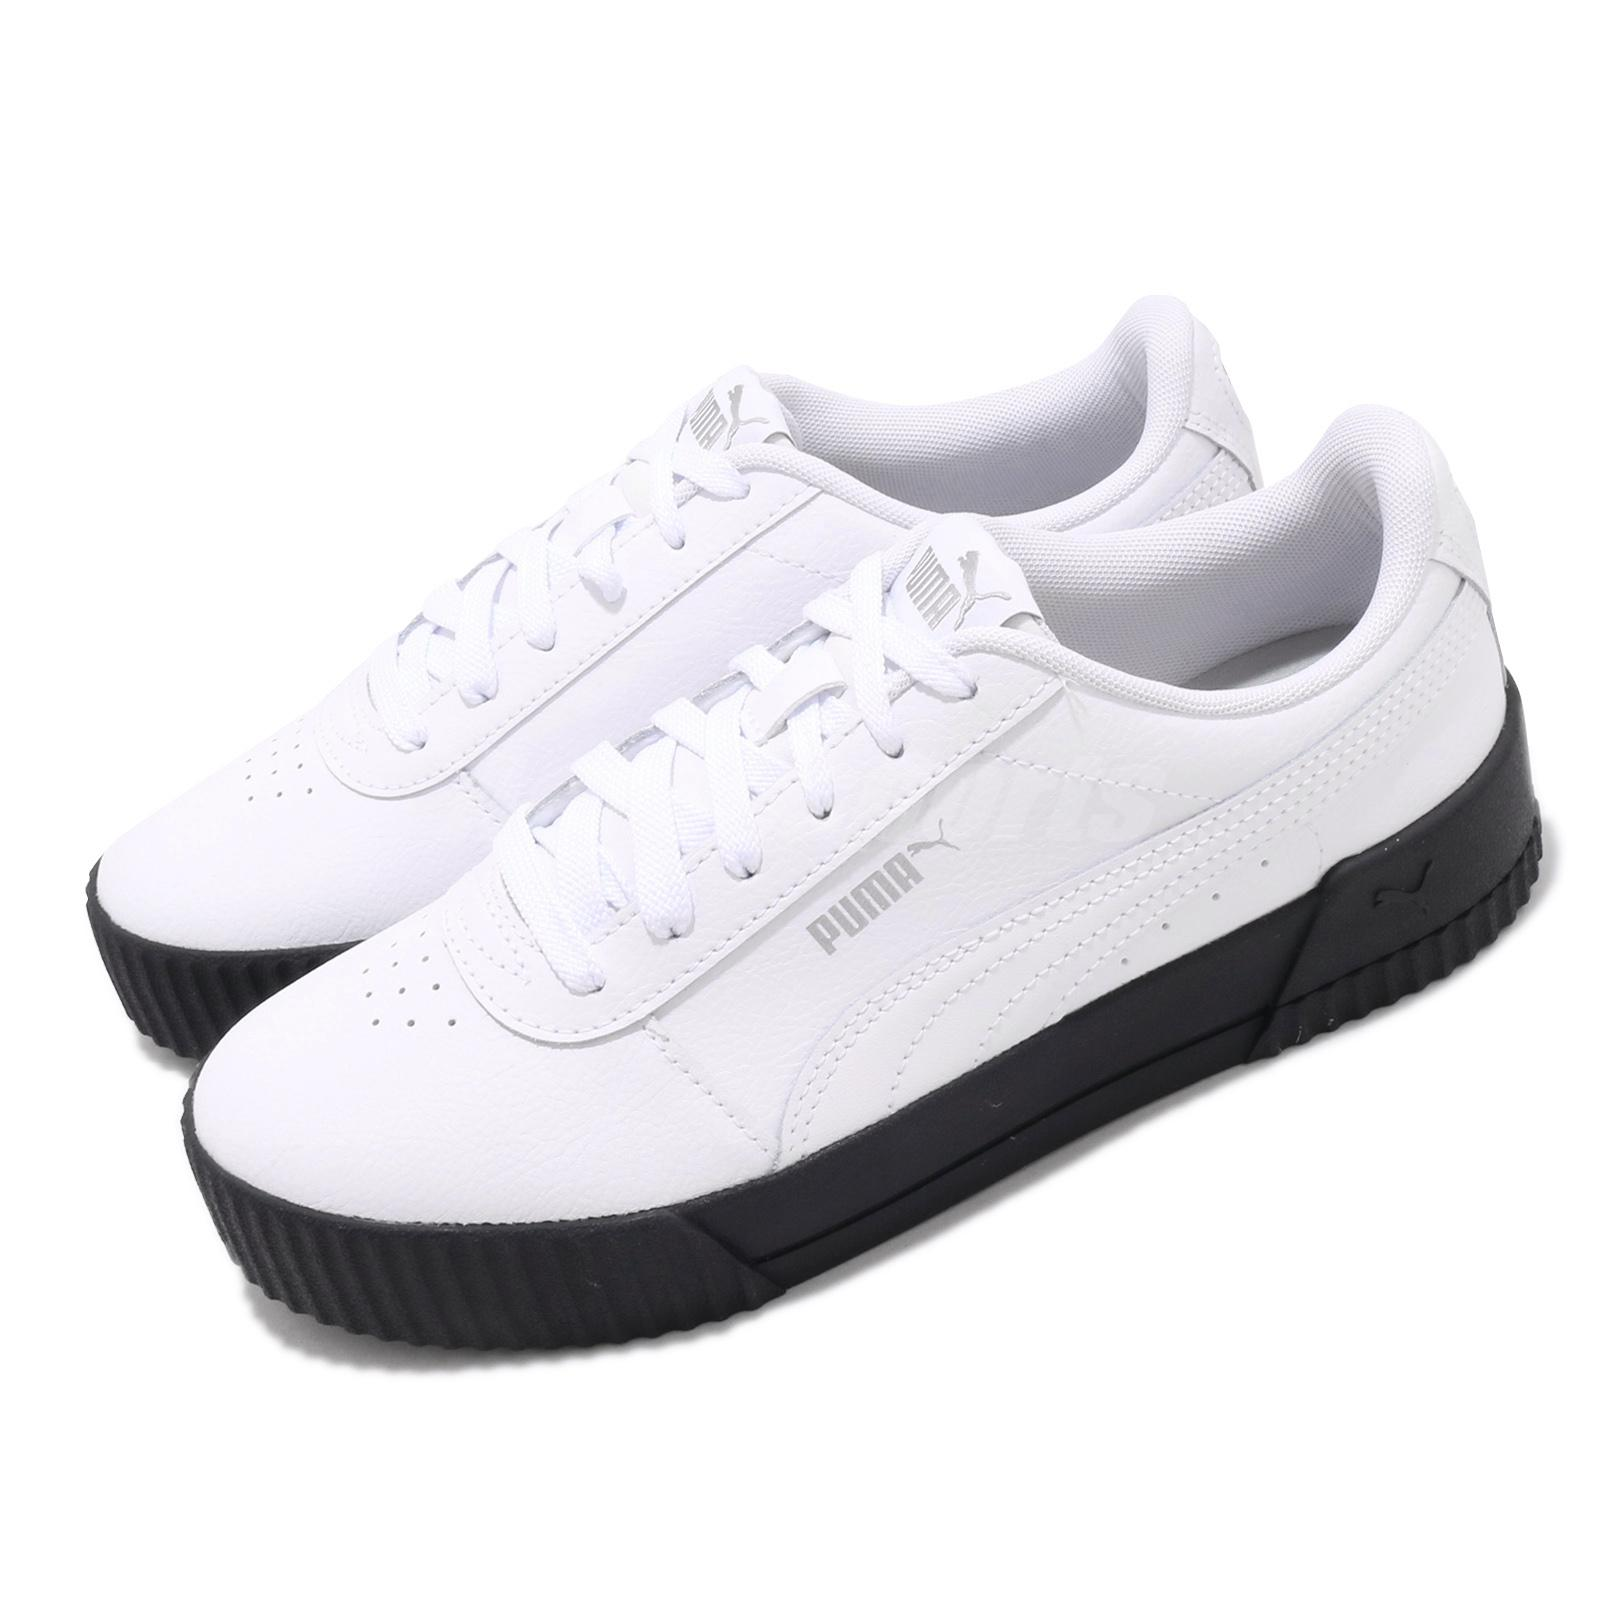 Details about Puma Carina L White Black Silver Women Casual Lifestyle Shoes  Sneakers 370325-17